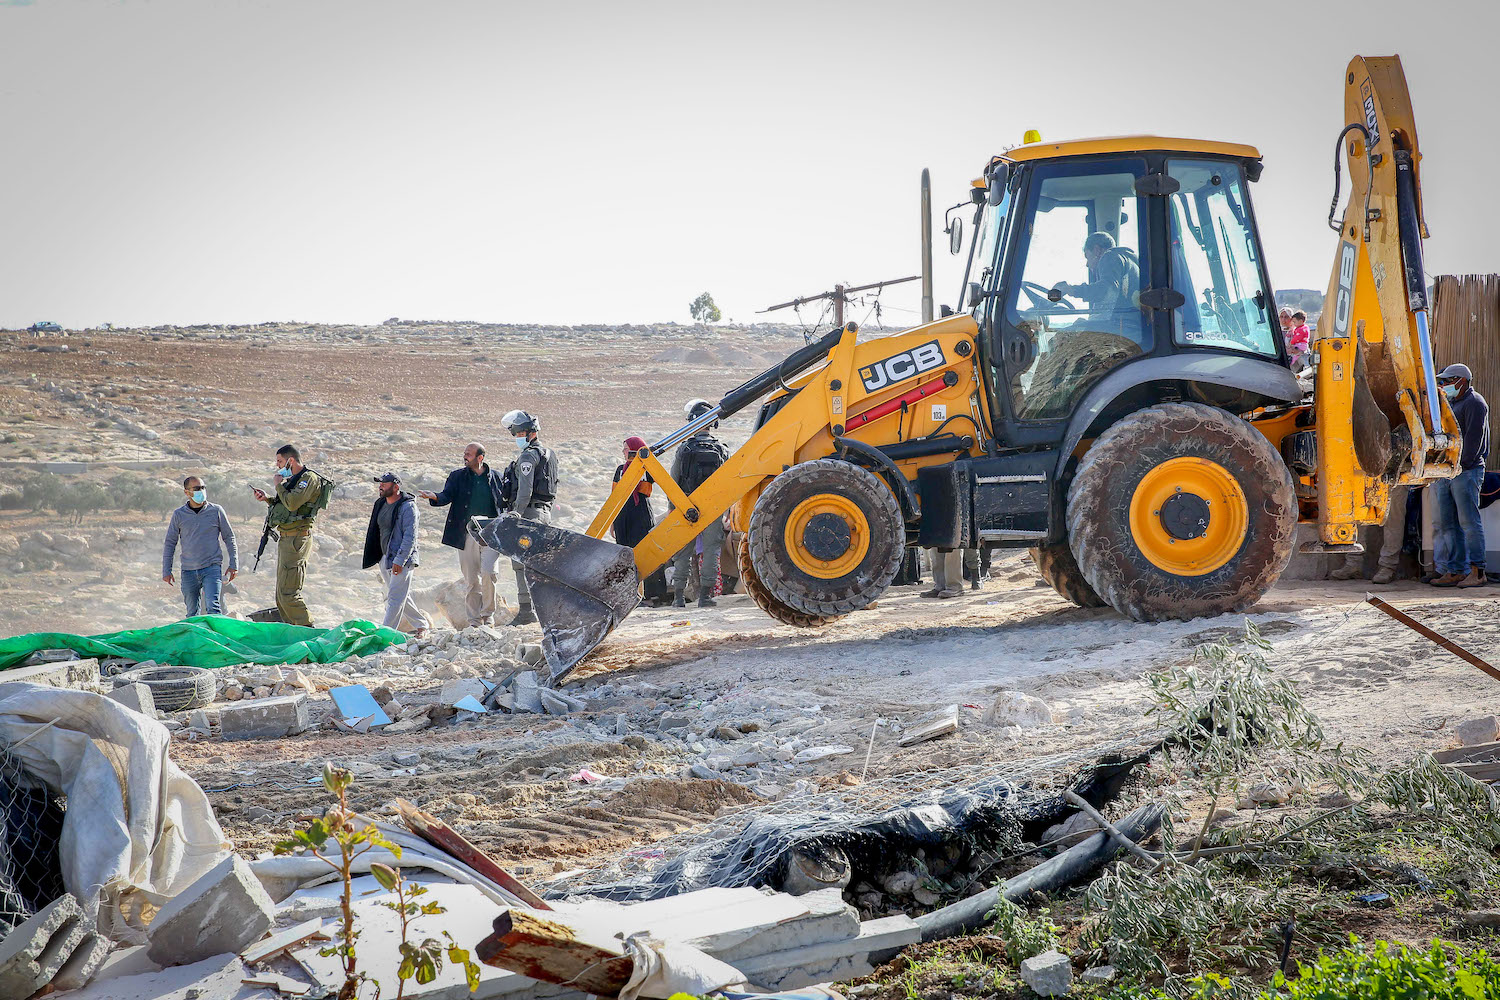 Israeli authorities demolish a tent in the West Bank area of Masafer, near the city of Yatta in the South Hebron Hills, on November 25, 2020. (Wissam Hashlamon/Flash90)